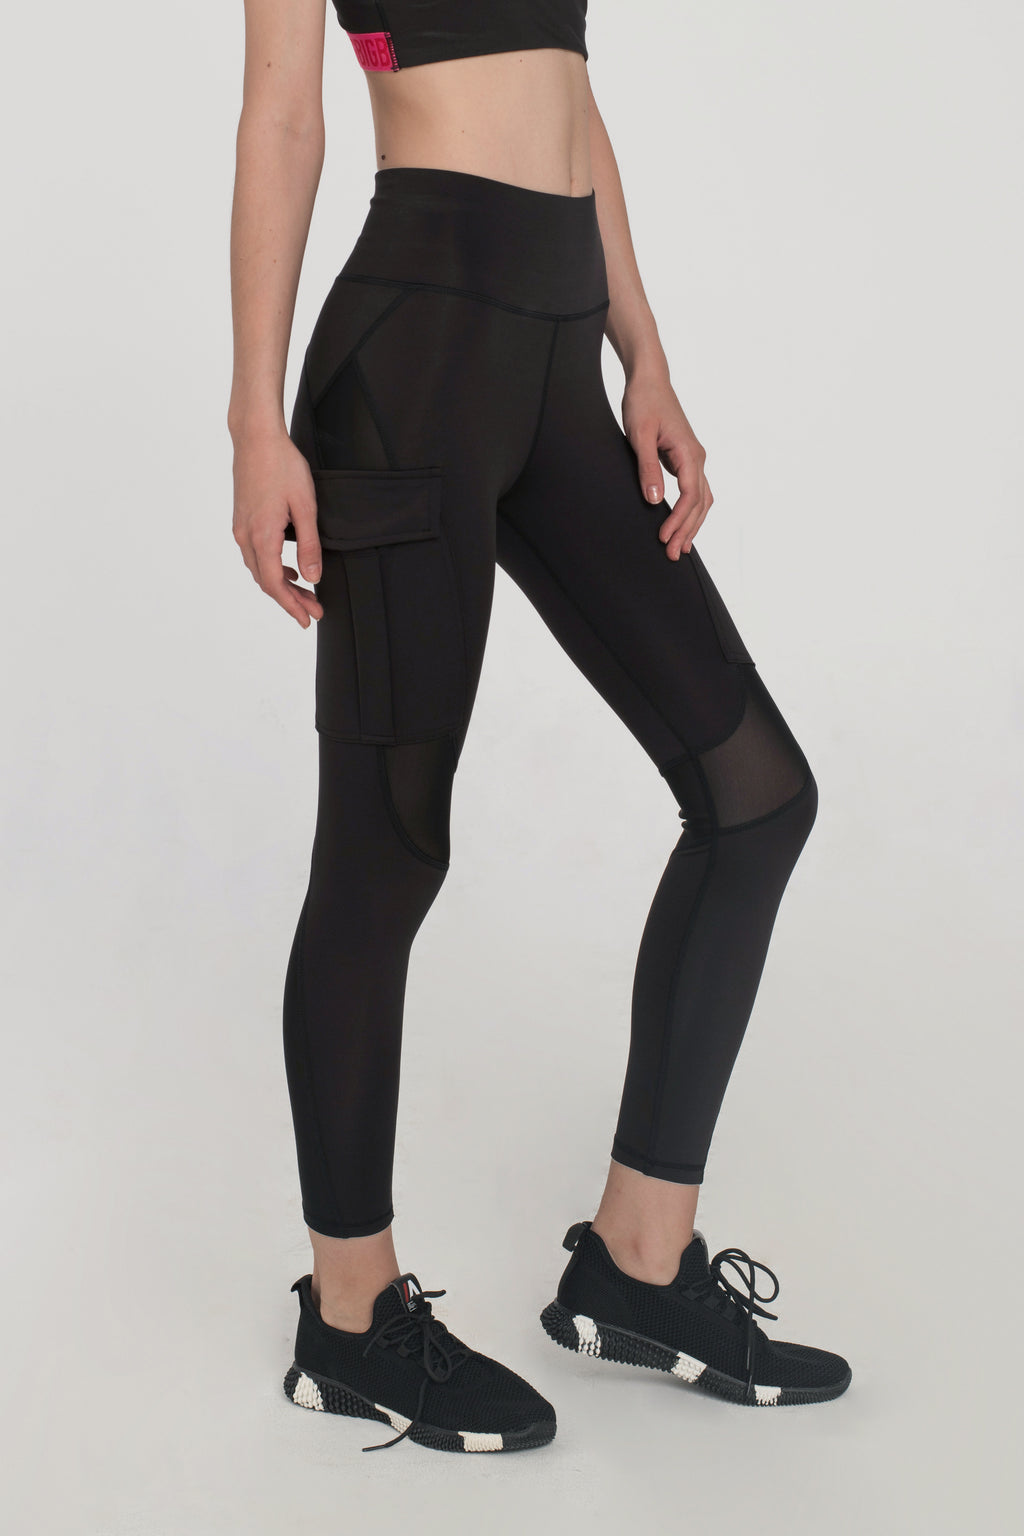 Black Mesh Utility Leggings